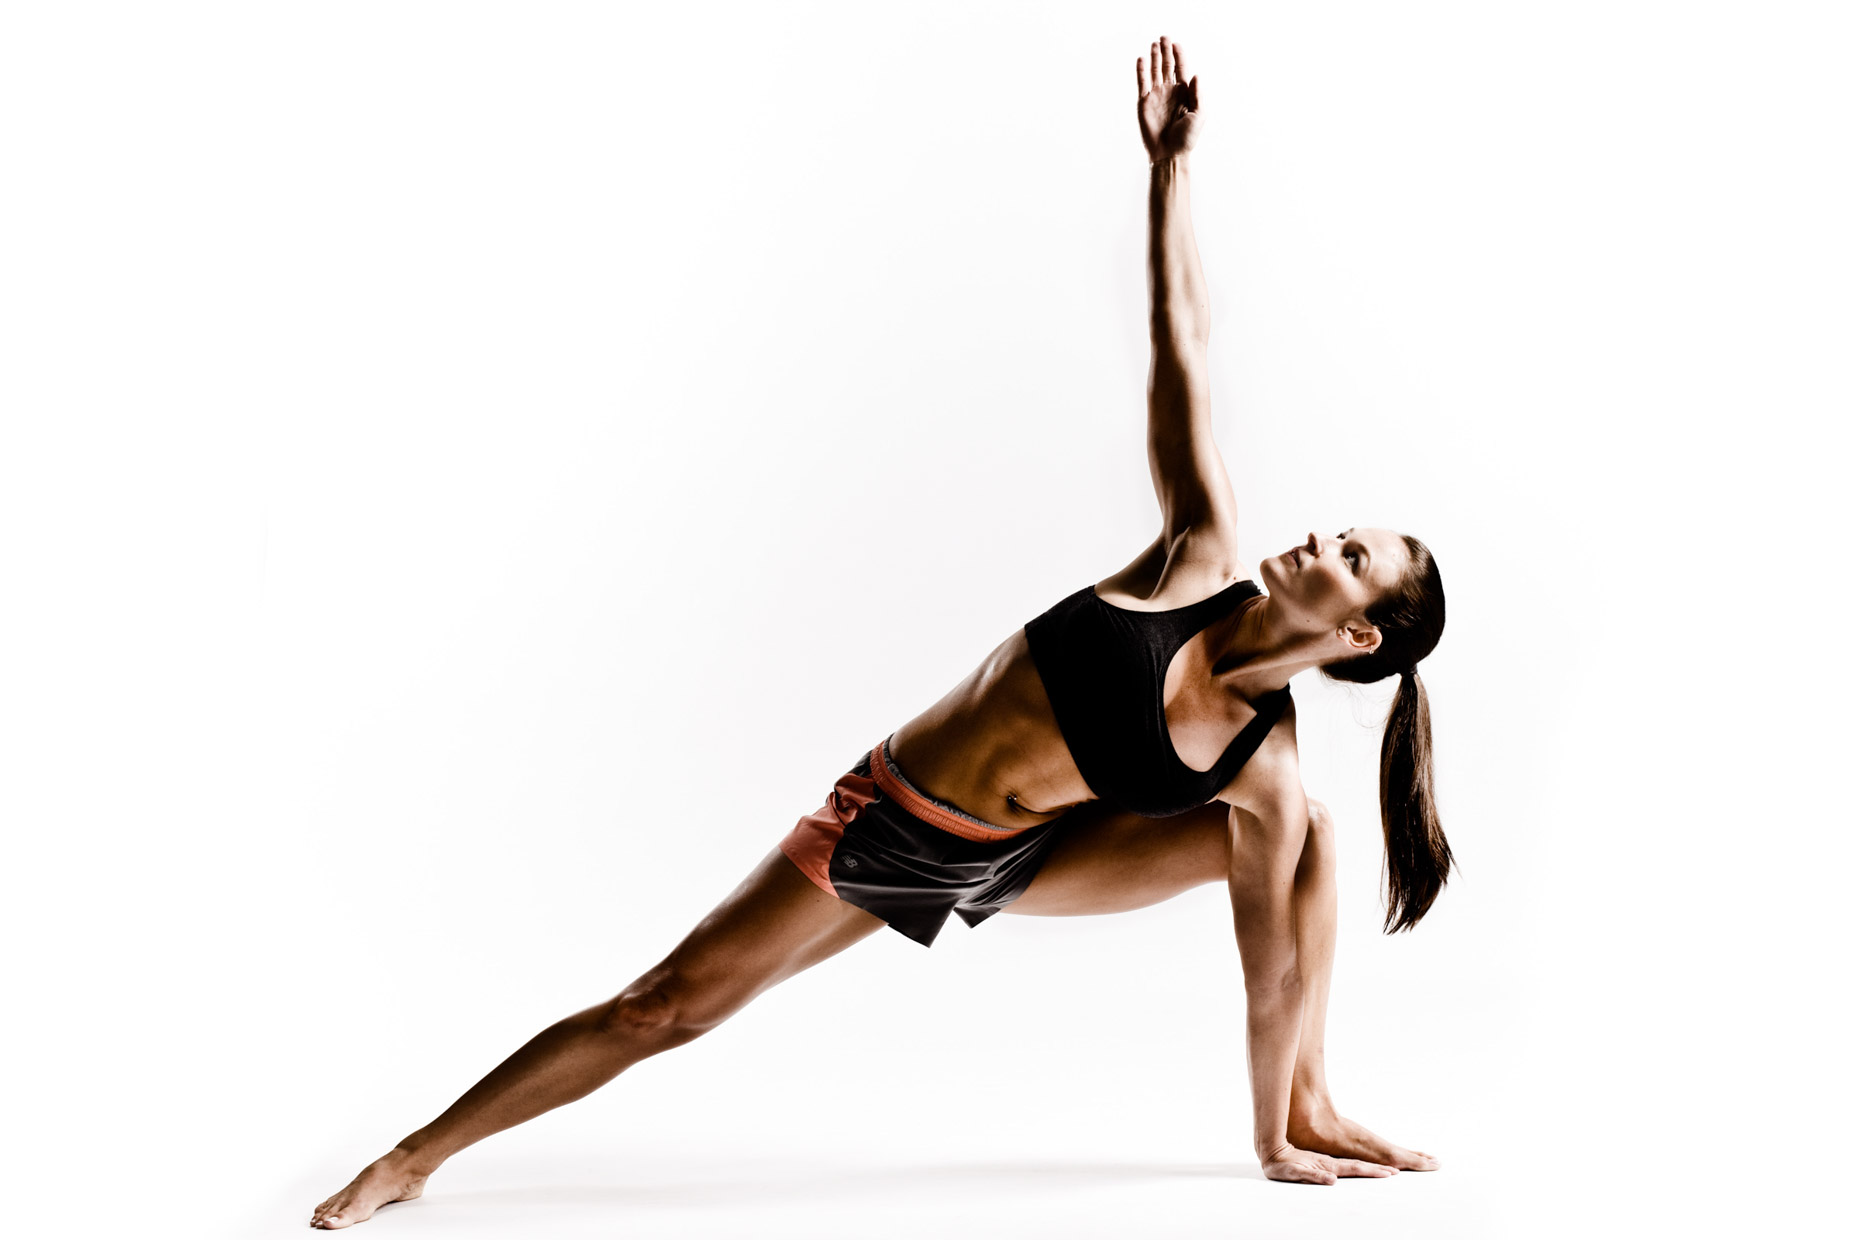 Yoga poses in Studio by fitness and yoga photographer Andy Batt